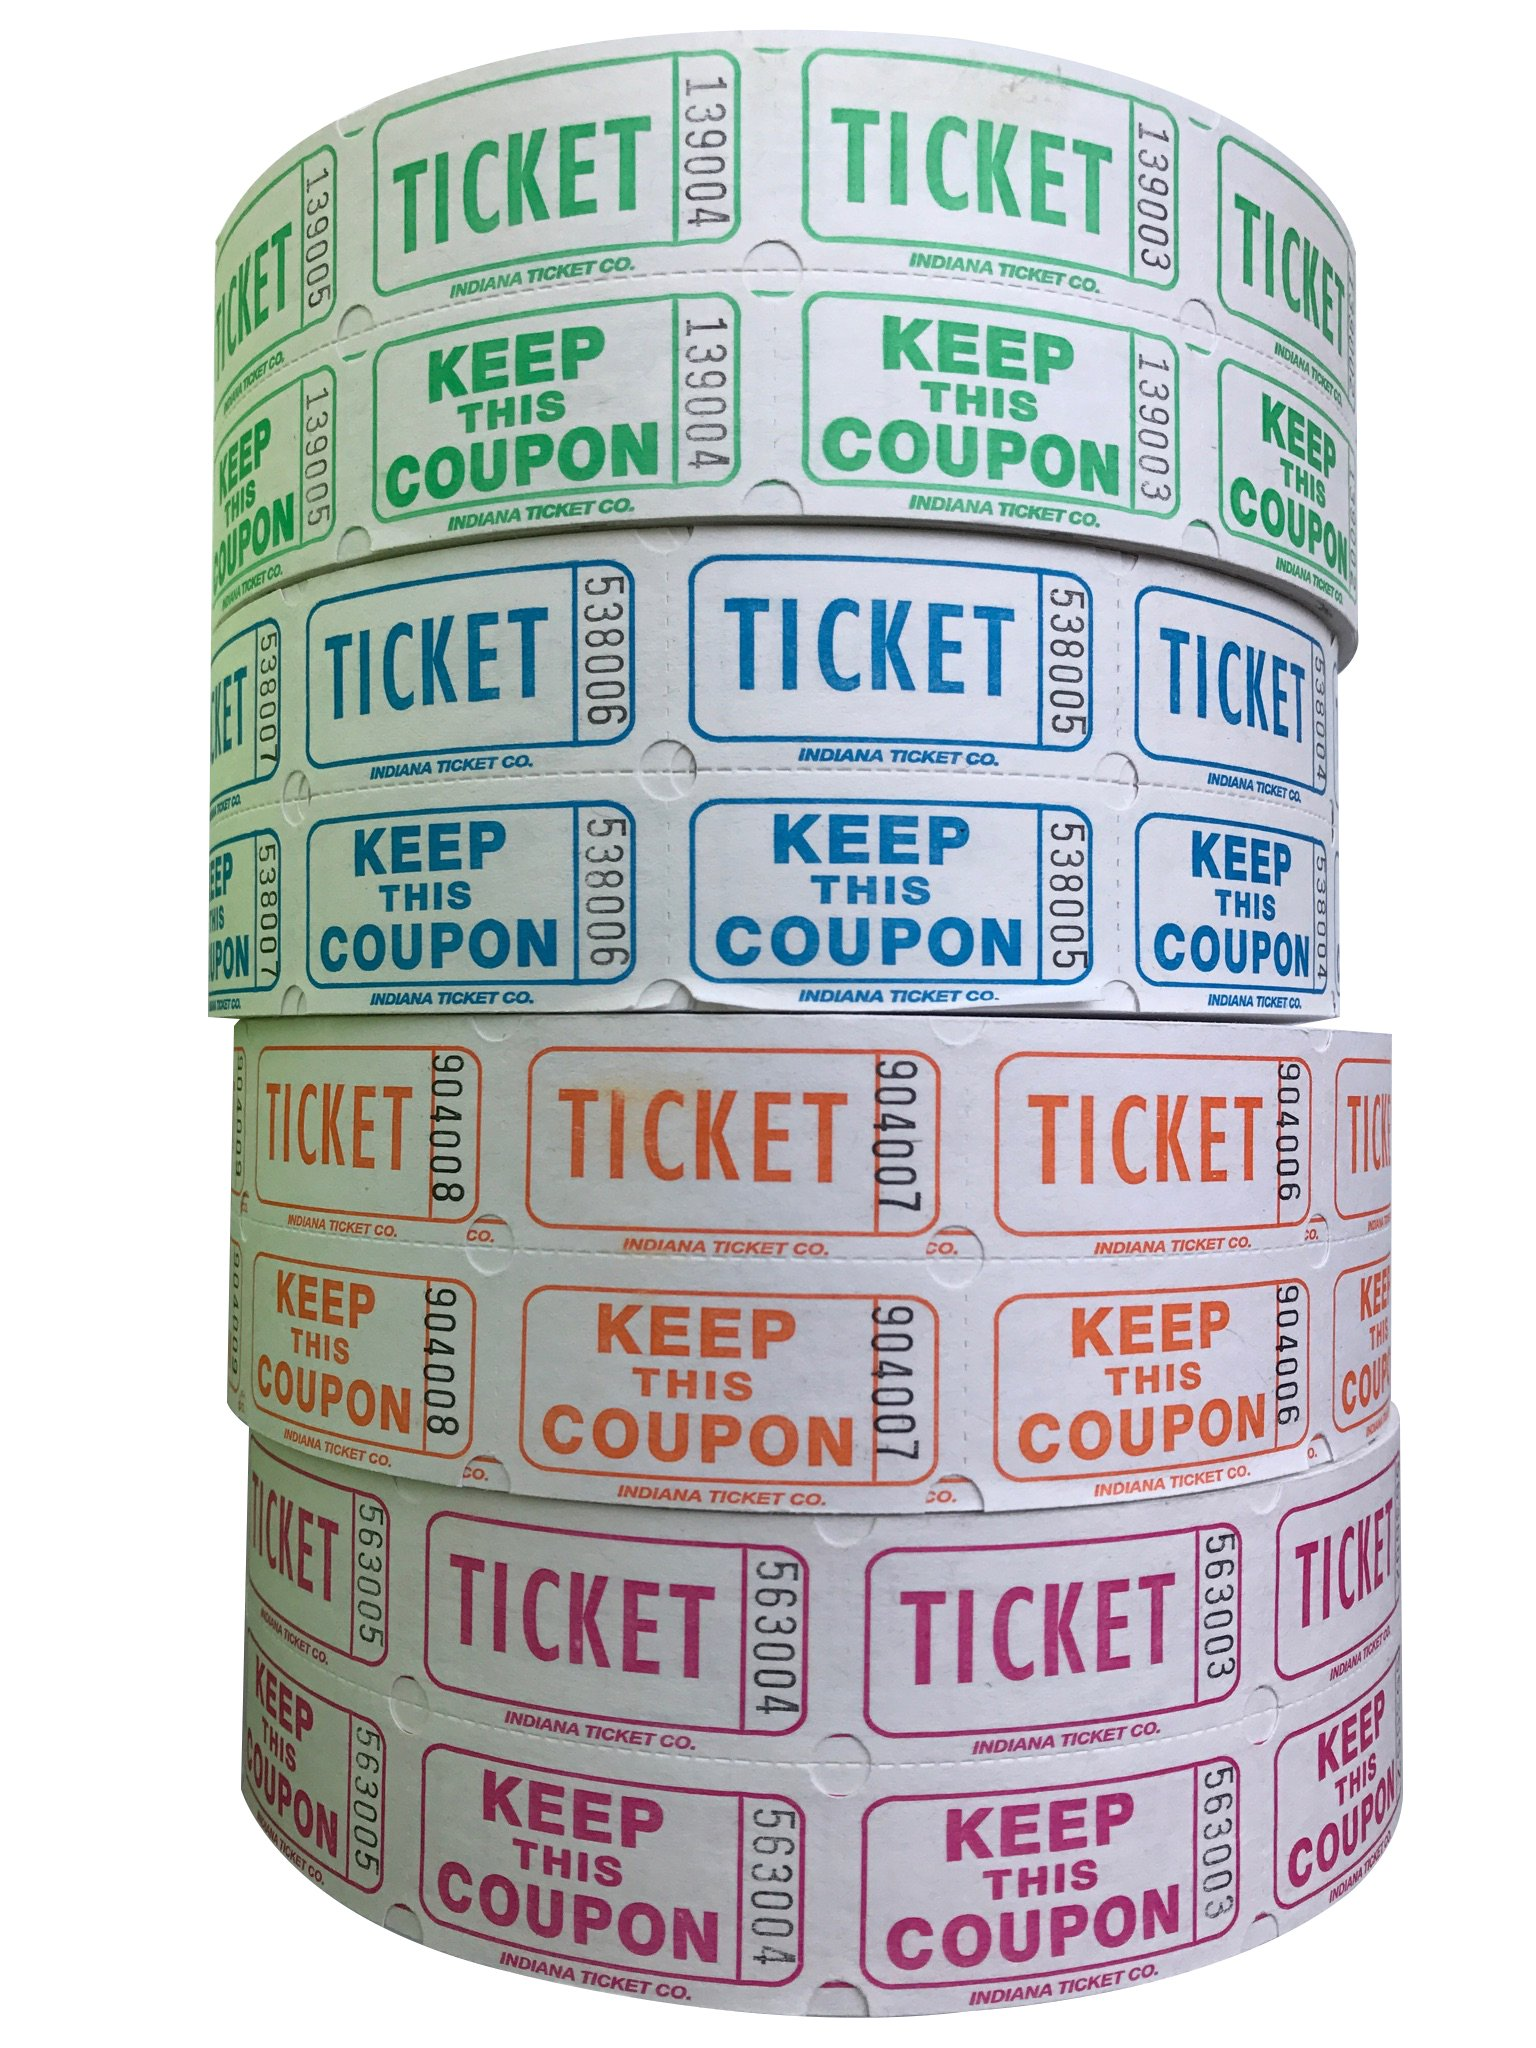 Raffle Tickets - (4 Rolls of 2000 Double Tickets) 8,000 Total 50/50 Raffle Tickets (Lime/Blueberry/Tangerine/Raspberry)